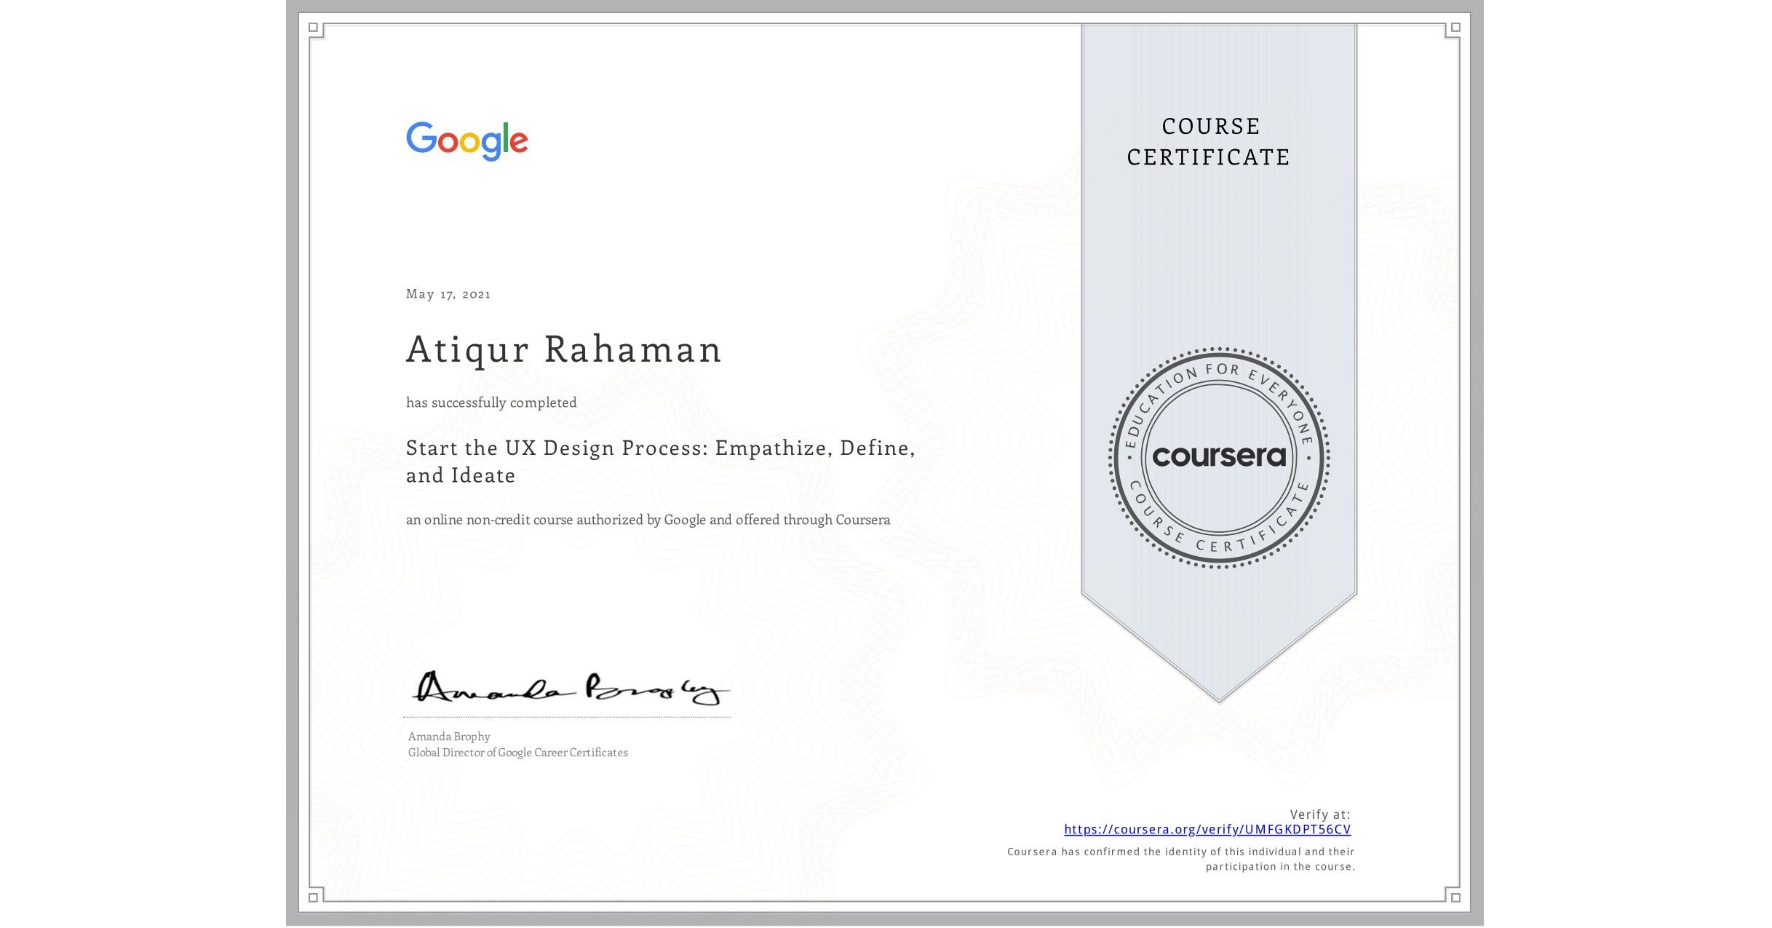 View certificate for Atiqur Rahaman, Start the UX Design Process: Empathize, Define, and Ideate, an online non-credit course authorized by Google and offered through Coursera